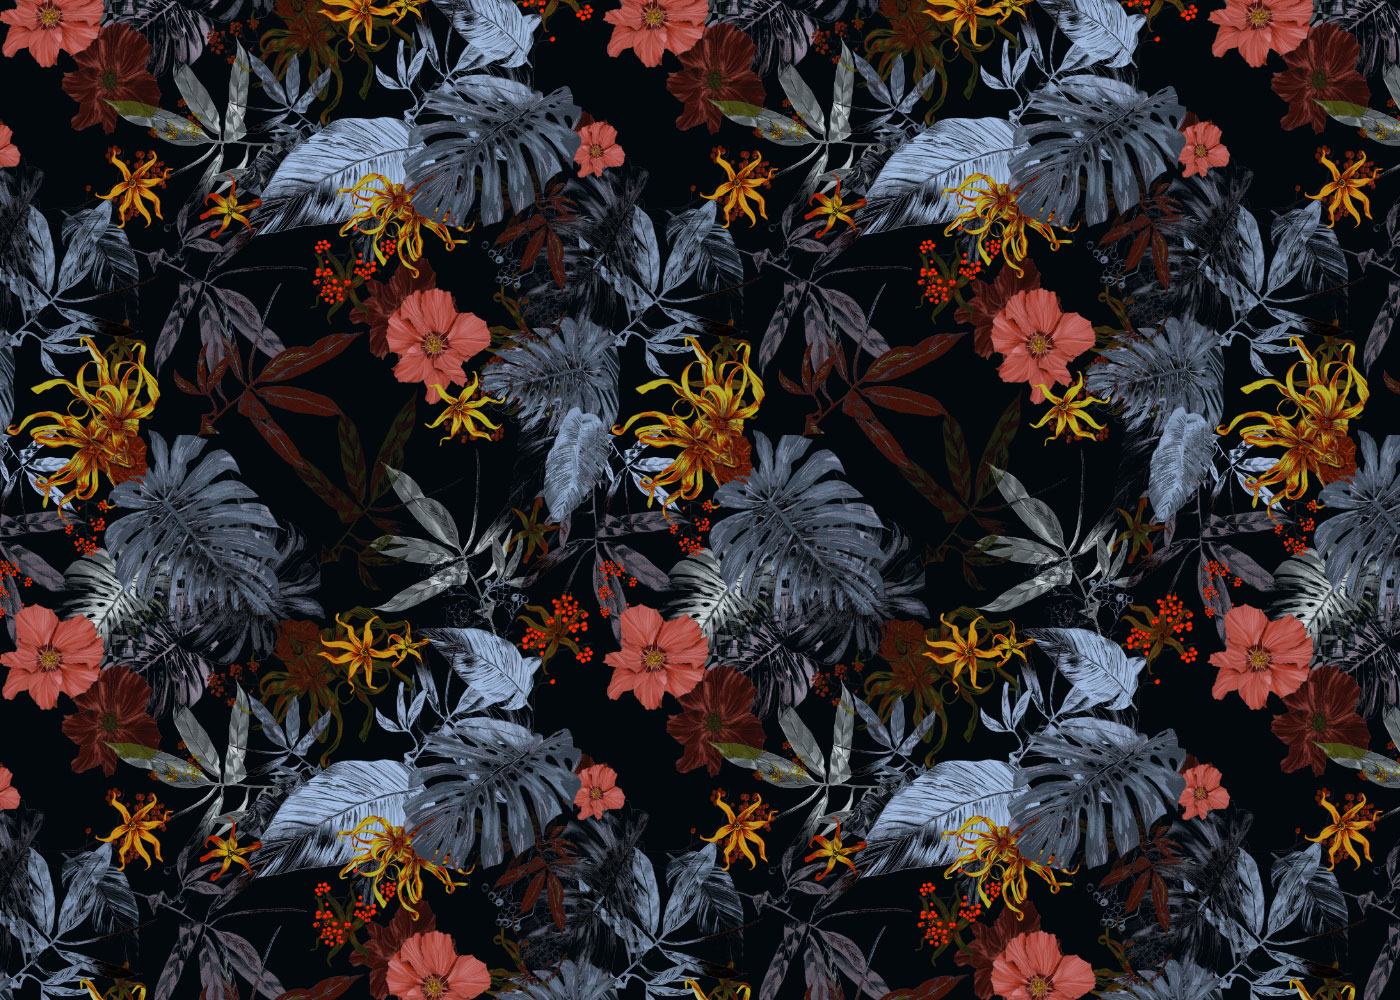 fig. 1. Tropical Midnight repeat pattern; hibiscus, ylang ylang and palm leaves